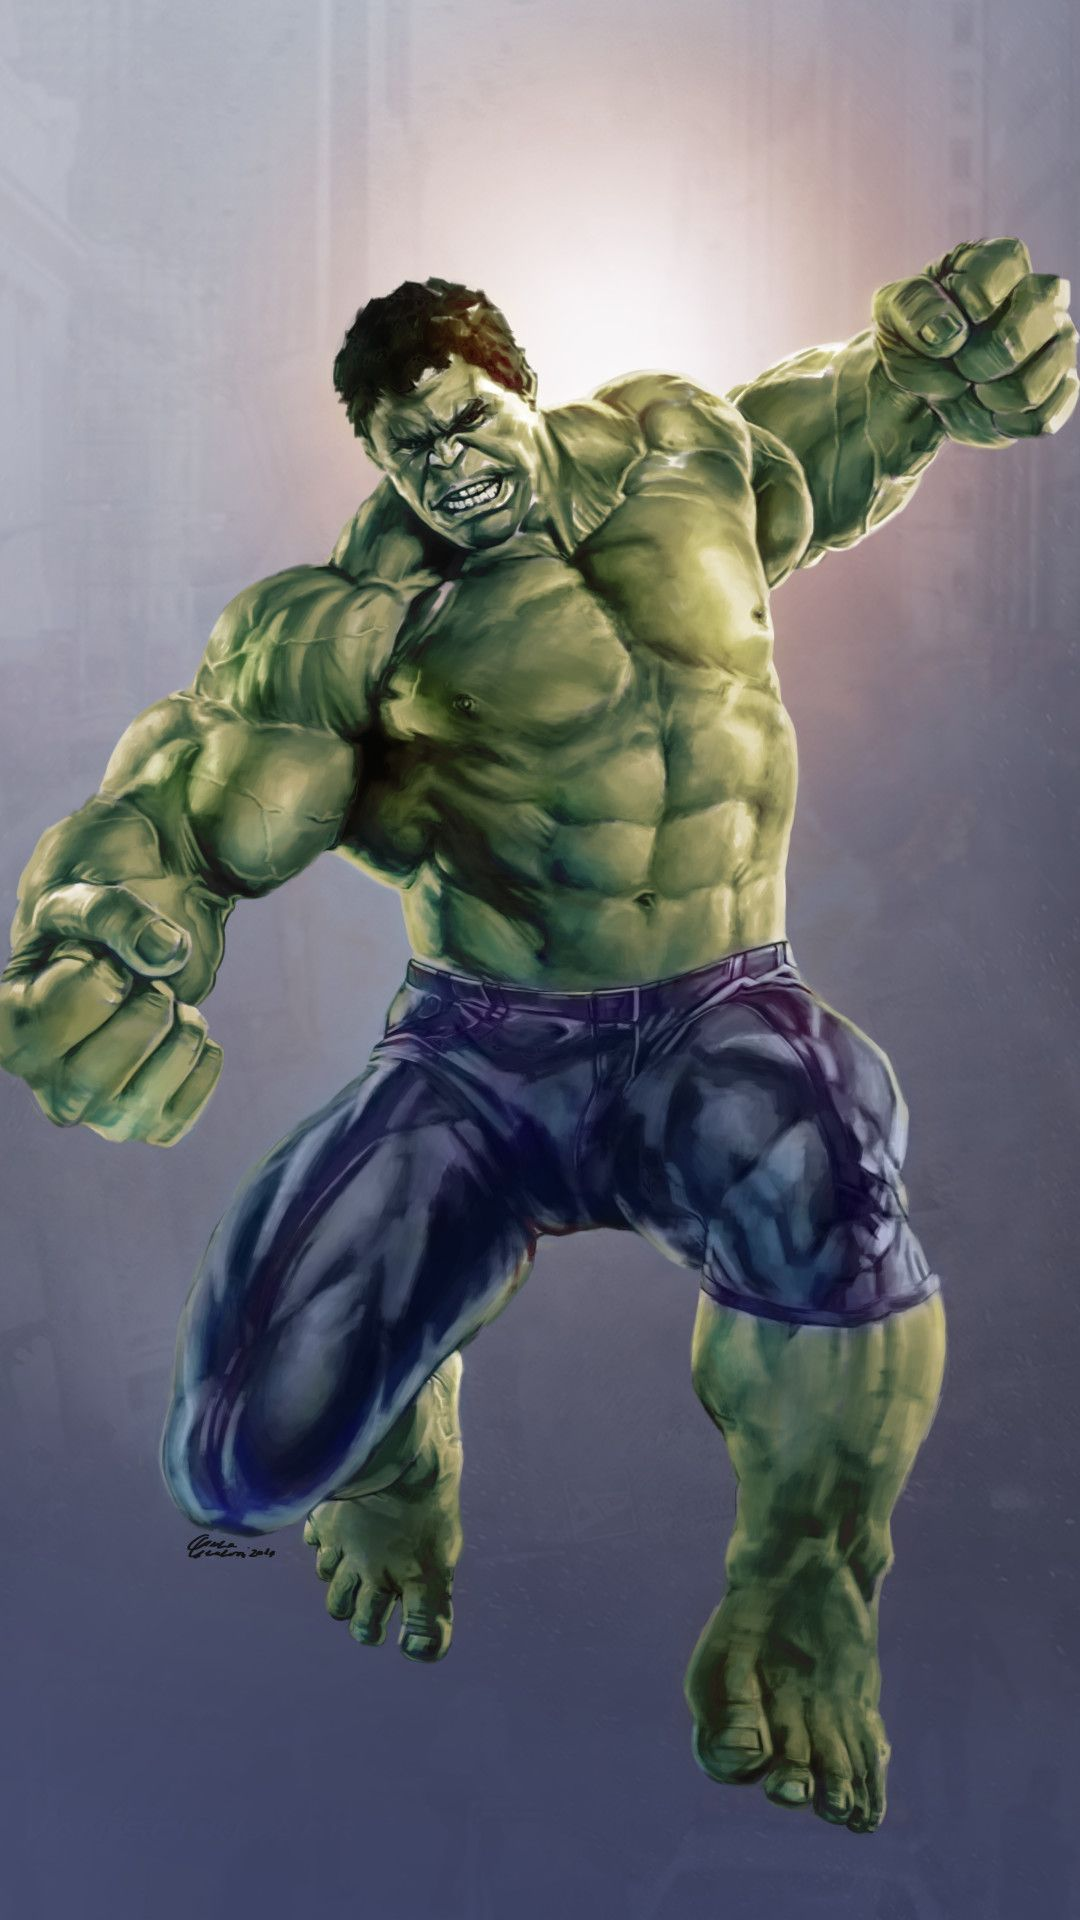 Incredible Hulk Avengers Mobile Wallpaper Iphone Android Samsung Pixel Xiaomi Mobile Wallpaper Incredible Hulk Superhero Wallpaper